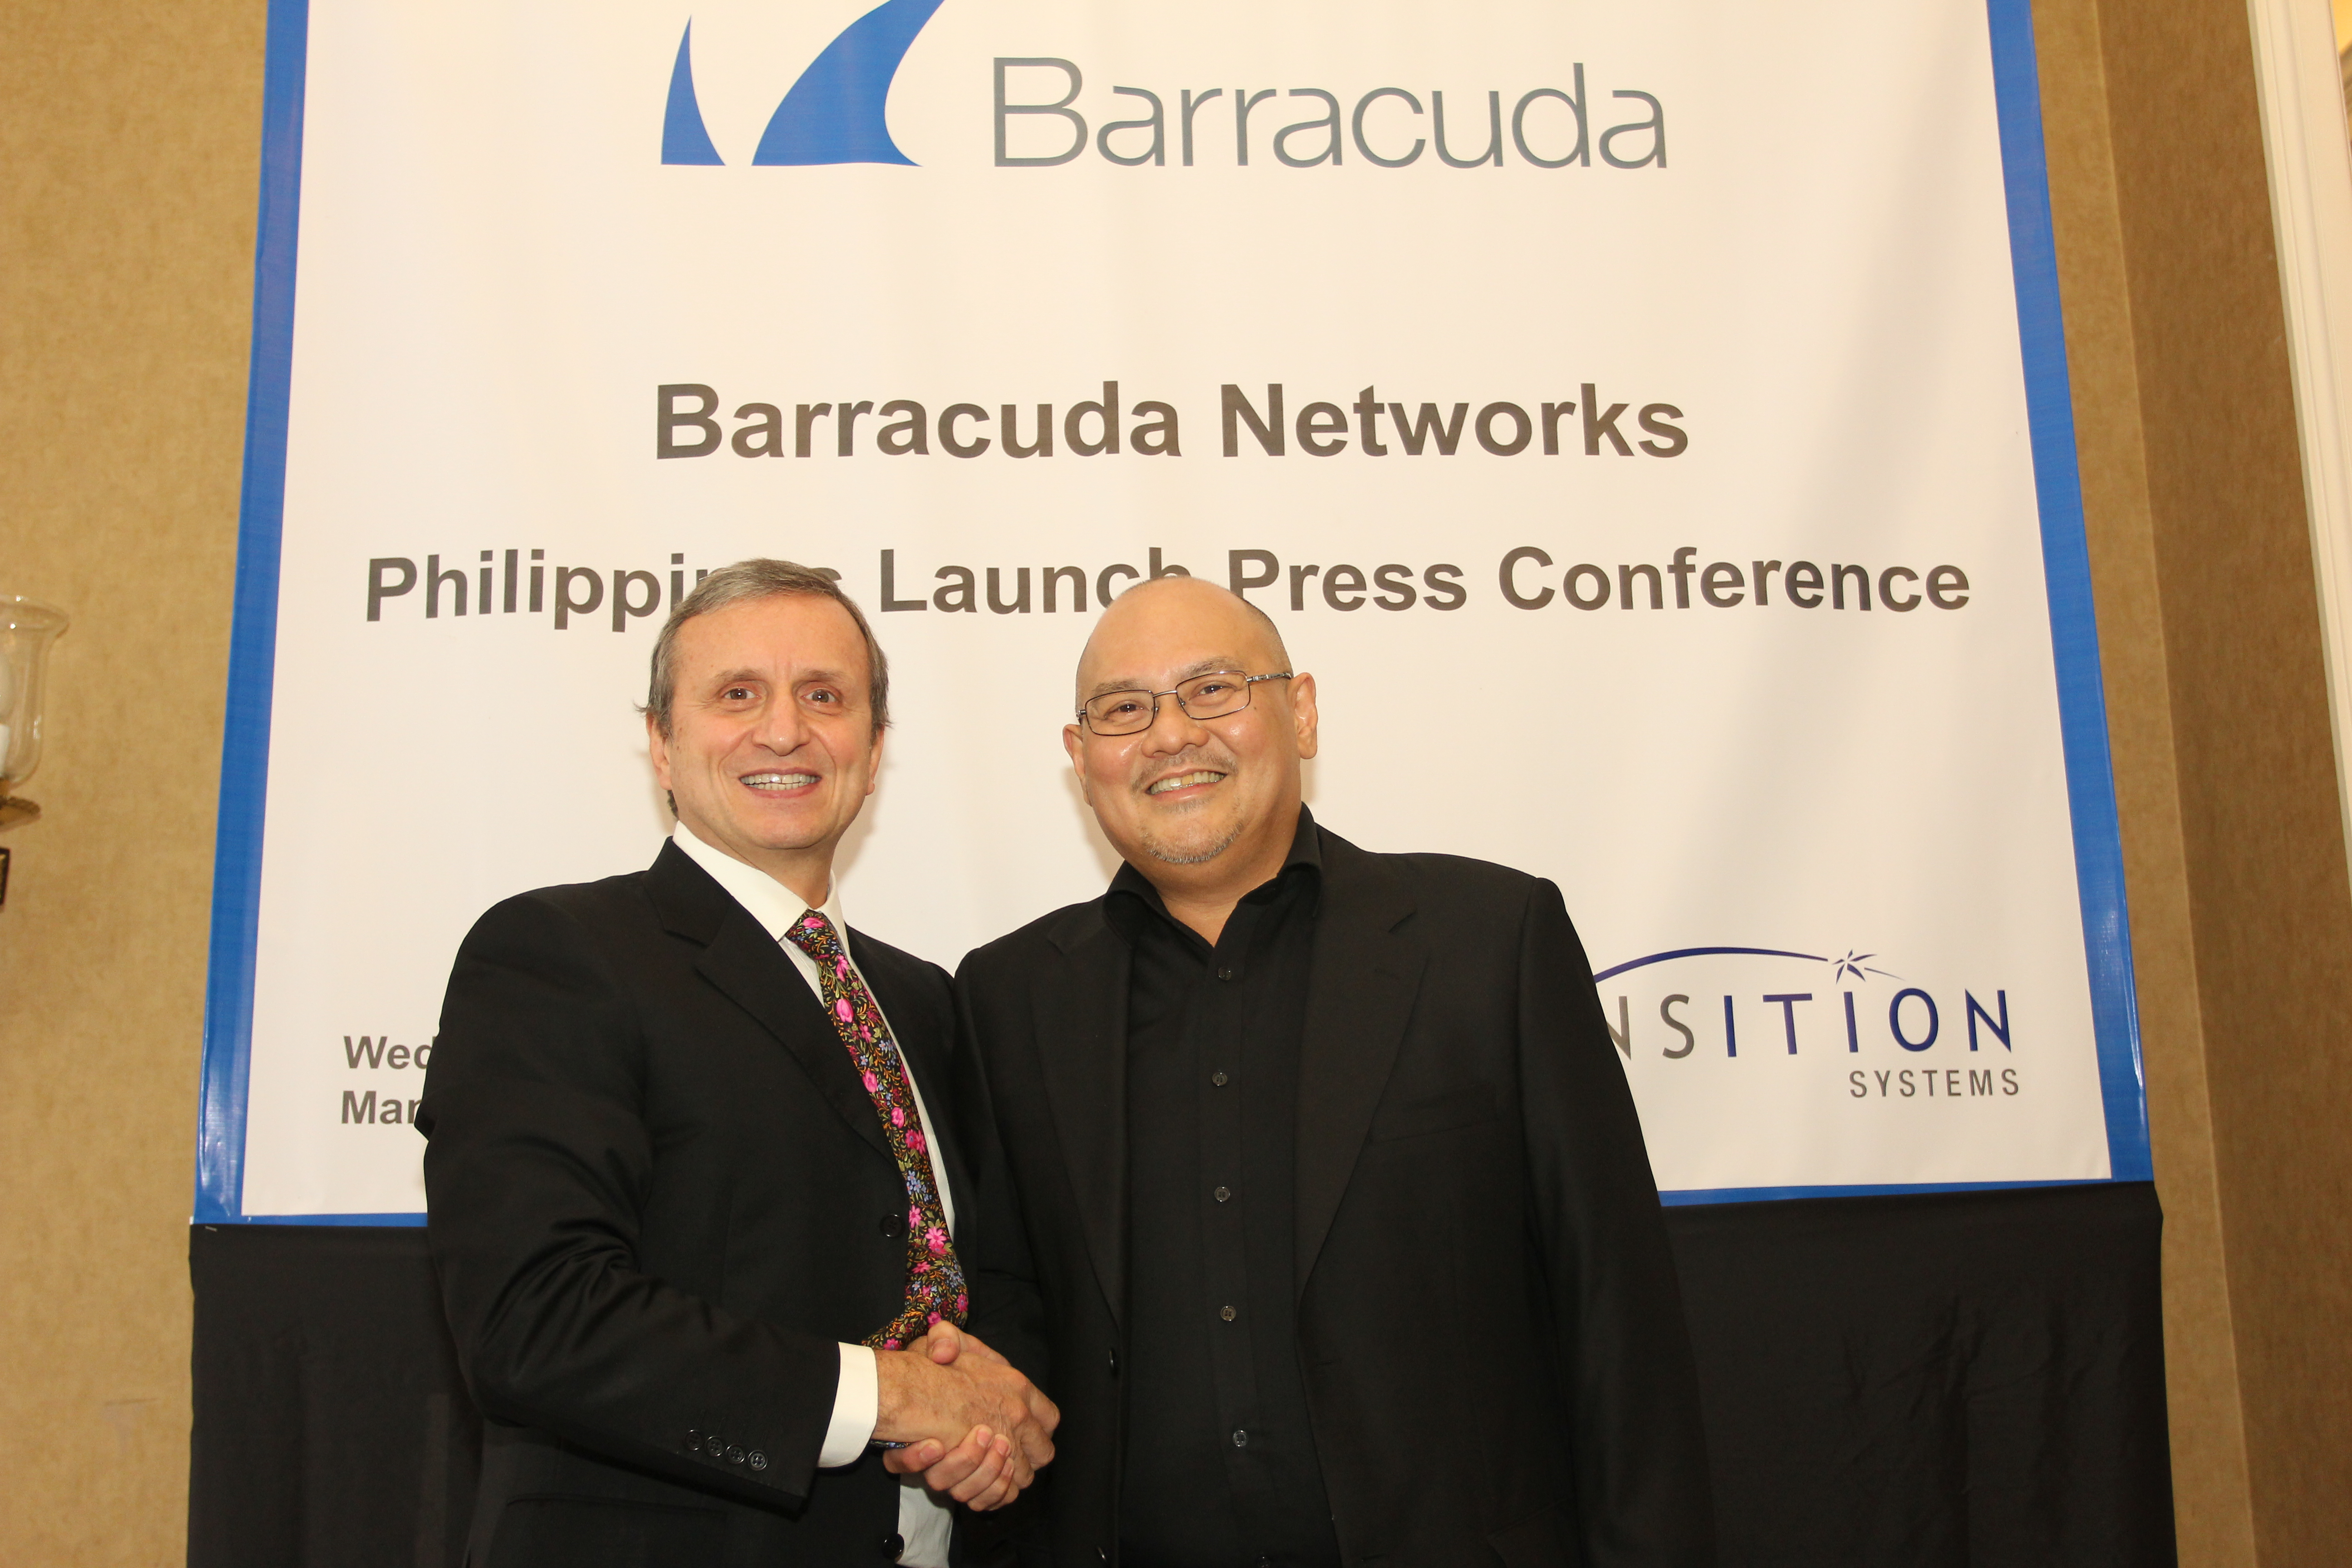 Transition Systems Appointed as Barracuda Networks Value Added Distributor in the Philippines